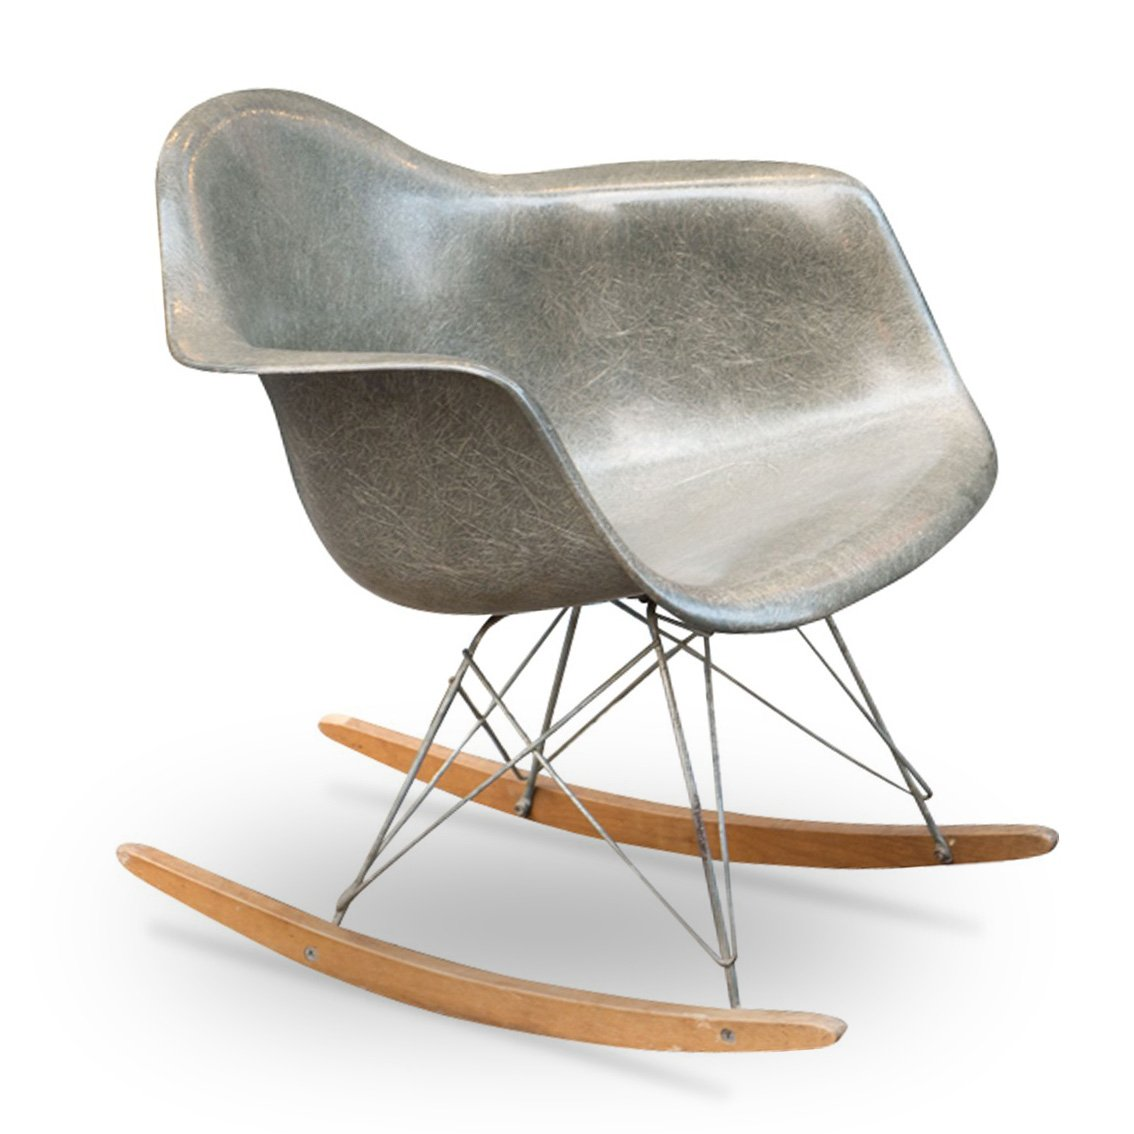 Vintage Rocking Chair By Charles Ray Eames For Herman